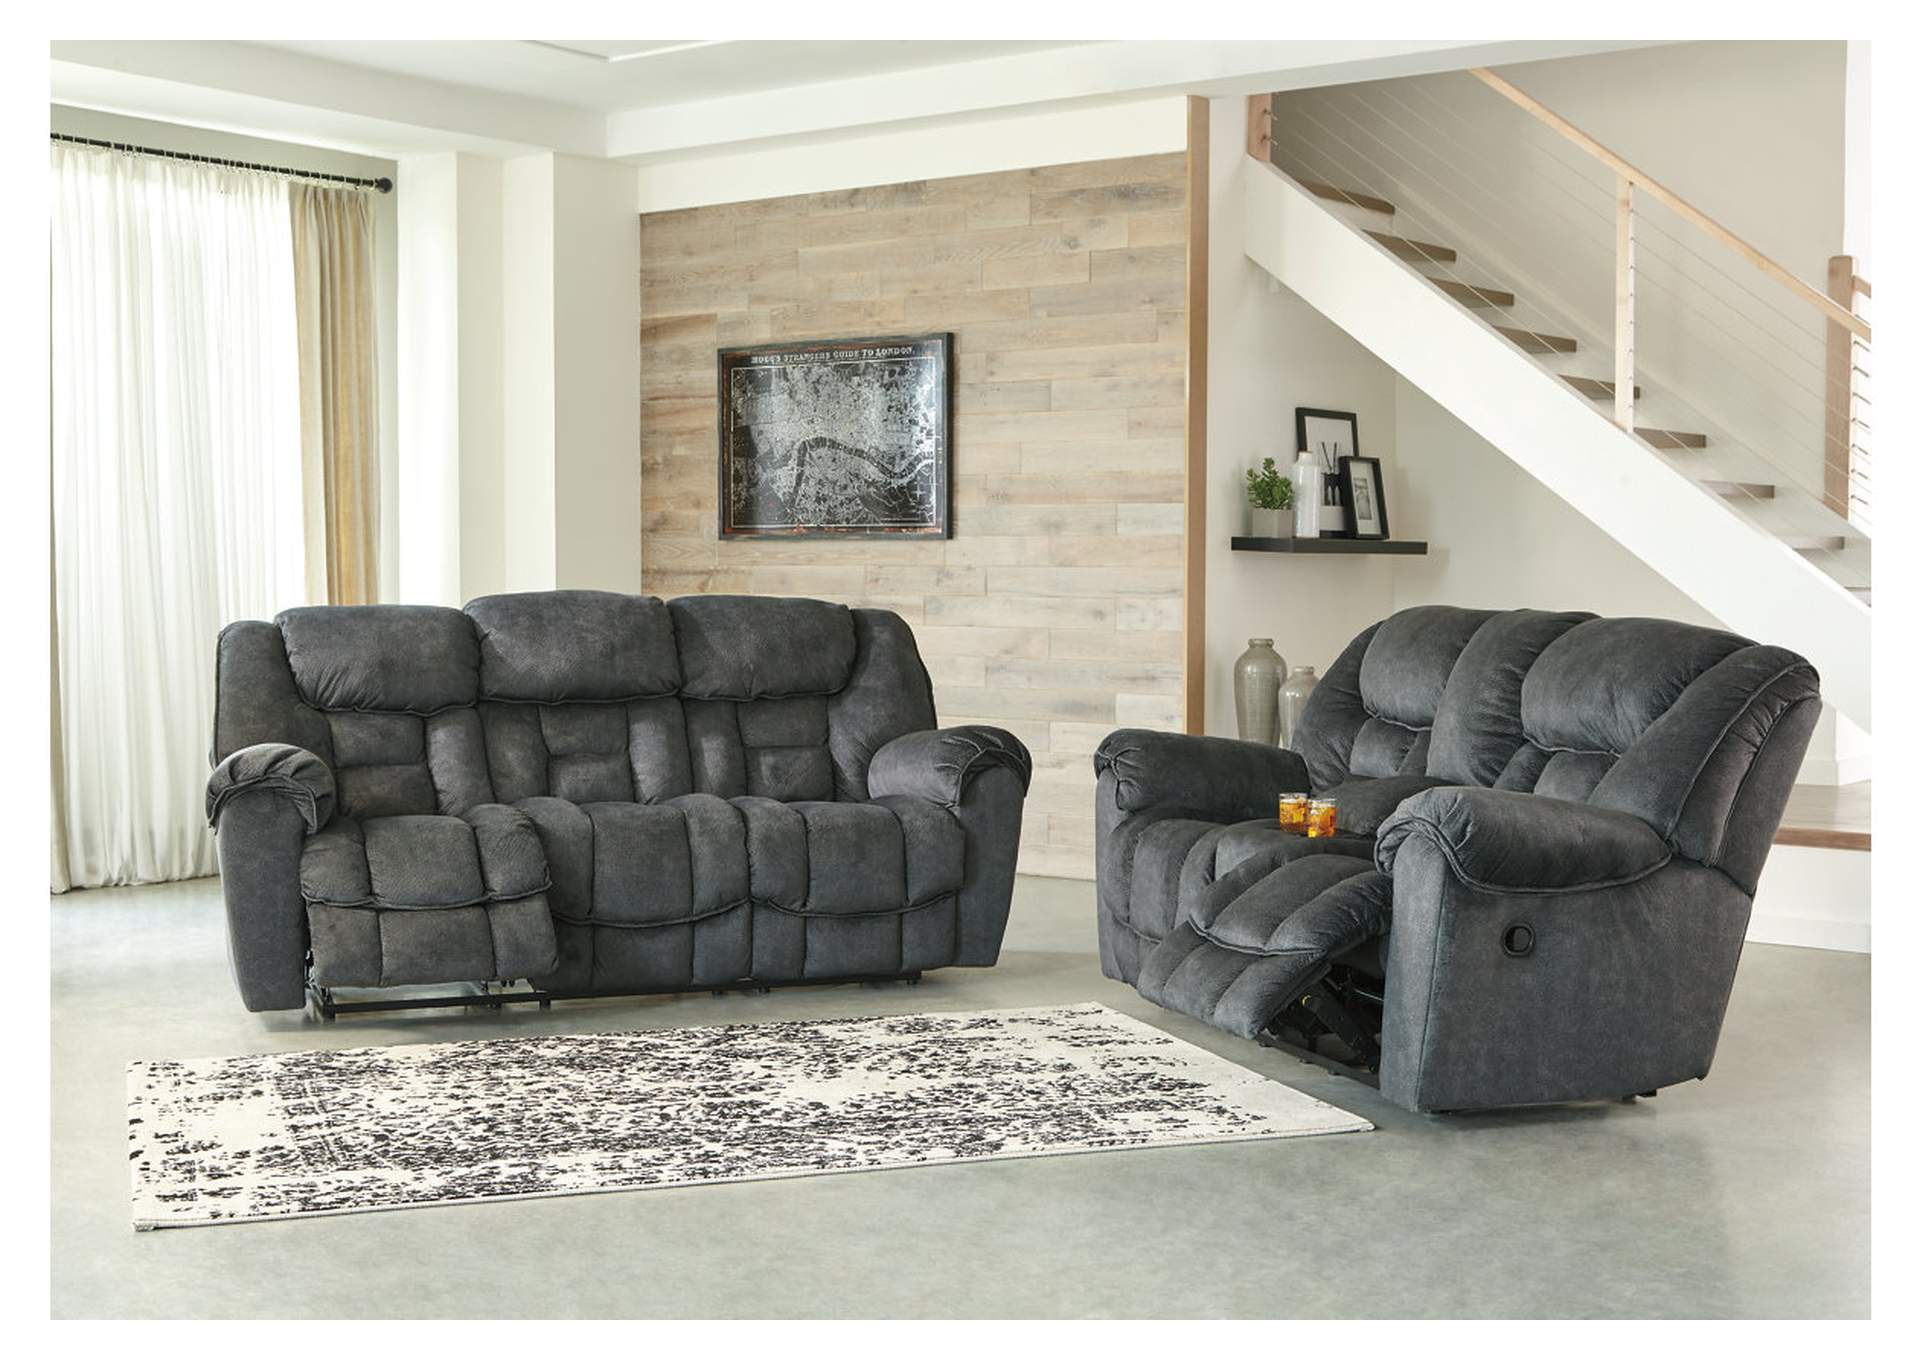 Capehorn Granite Reclining Sofa & Loveseat,Signature Design By Ashley